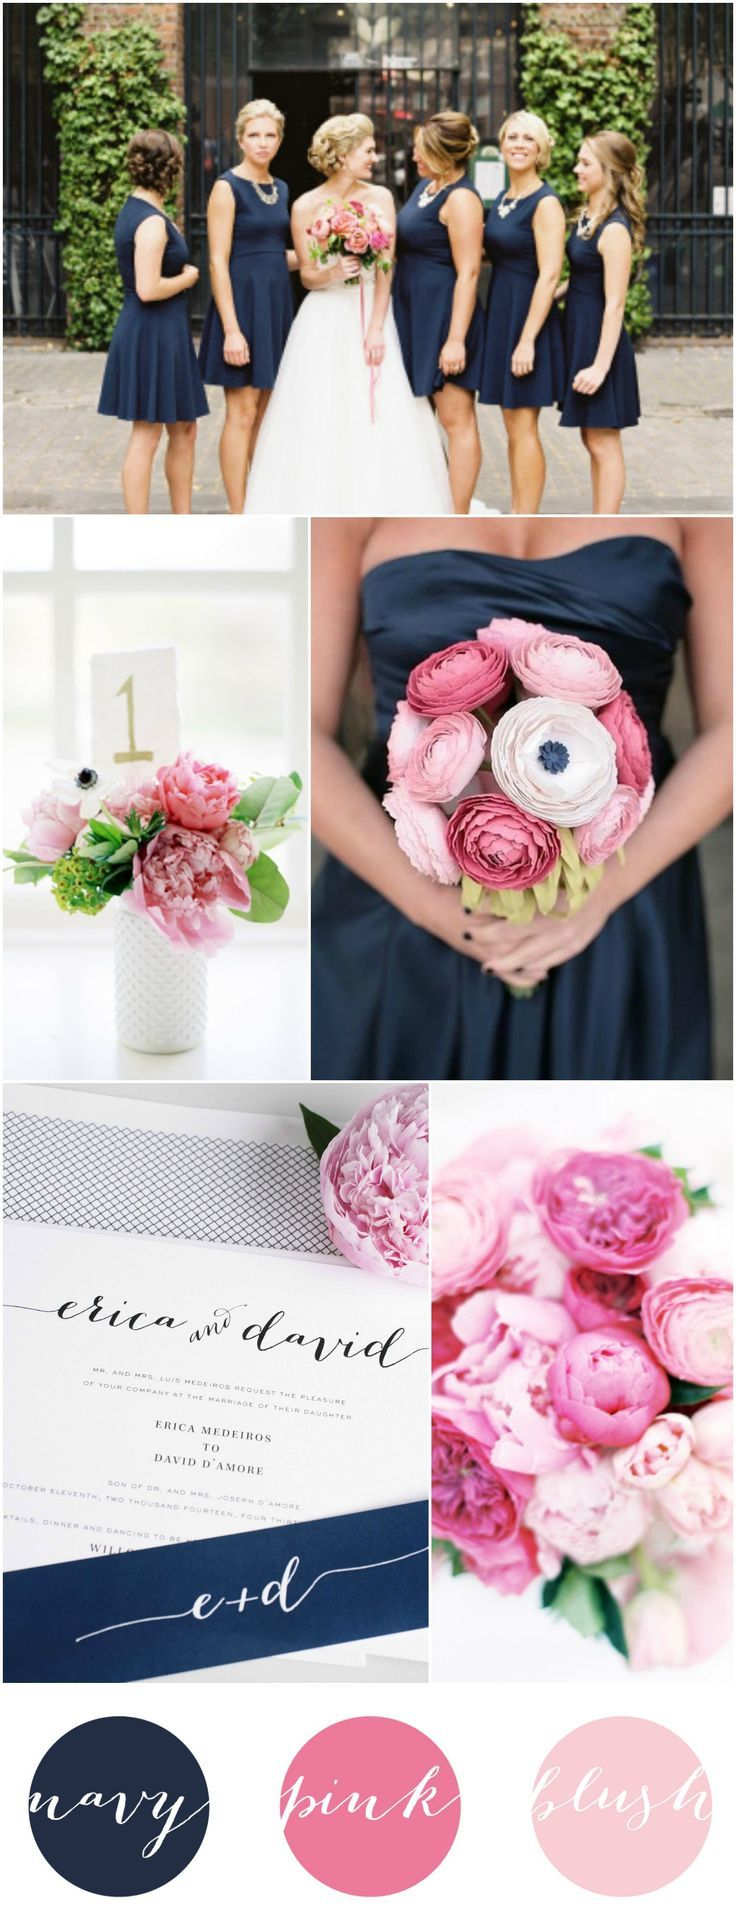 Gorgeous, Romantic, and Rustic Navy Blue, Hot Pink, and Blush Wedding Inspiration and Ideas from Shine Wedding Invitations